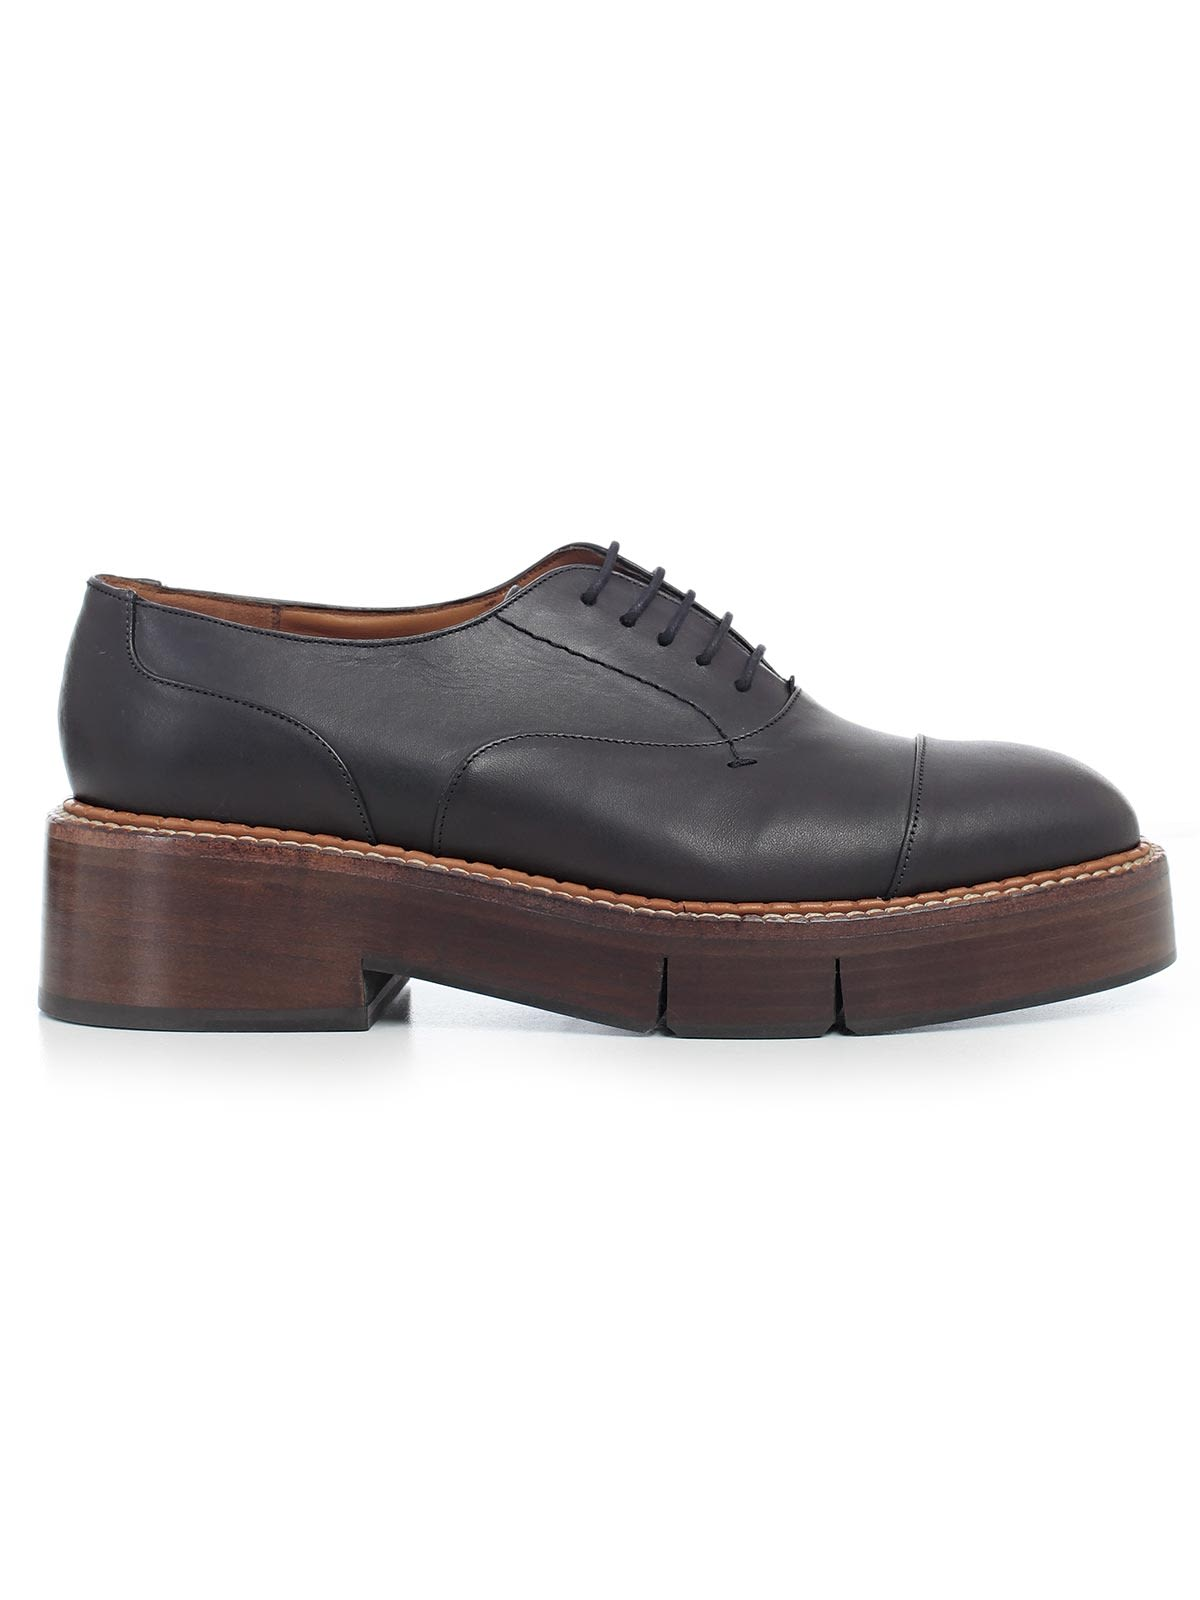 VINTAGE DERBY SHOES